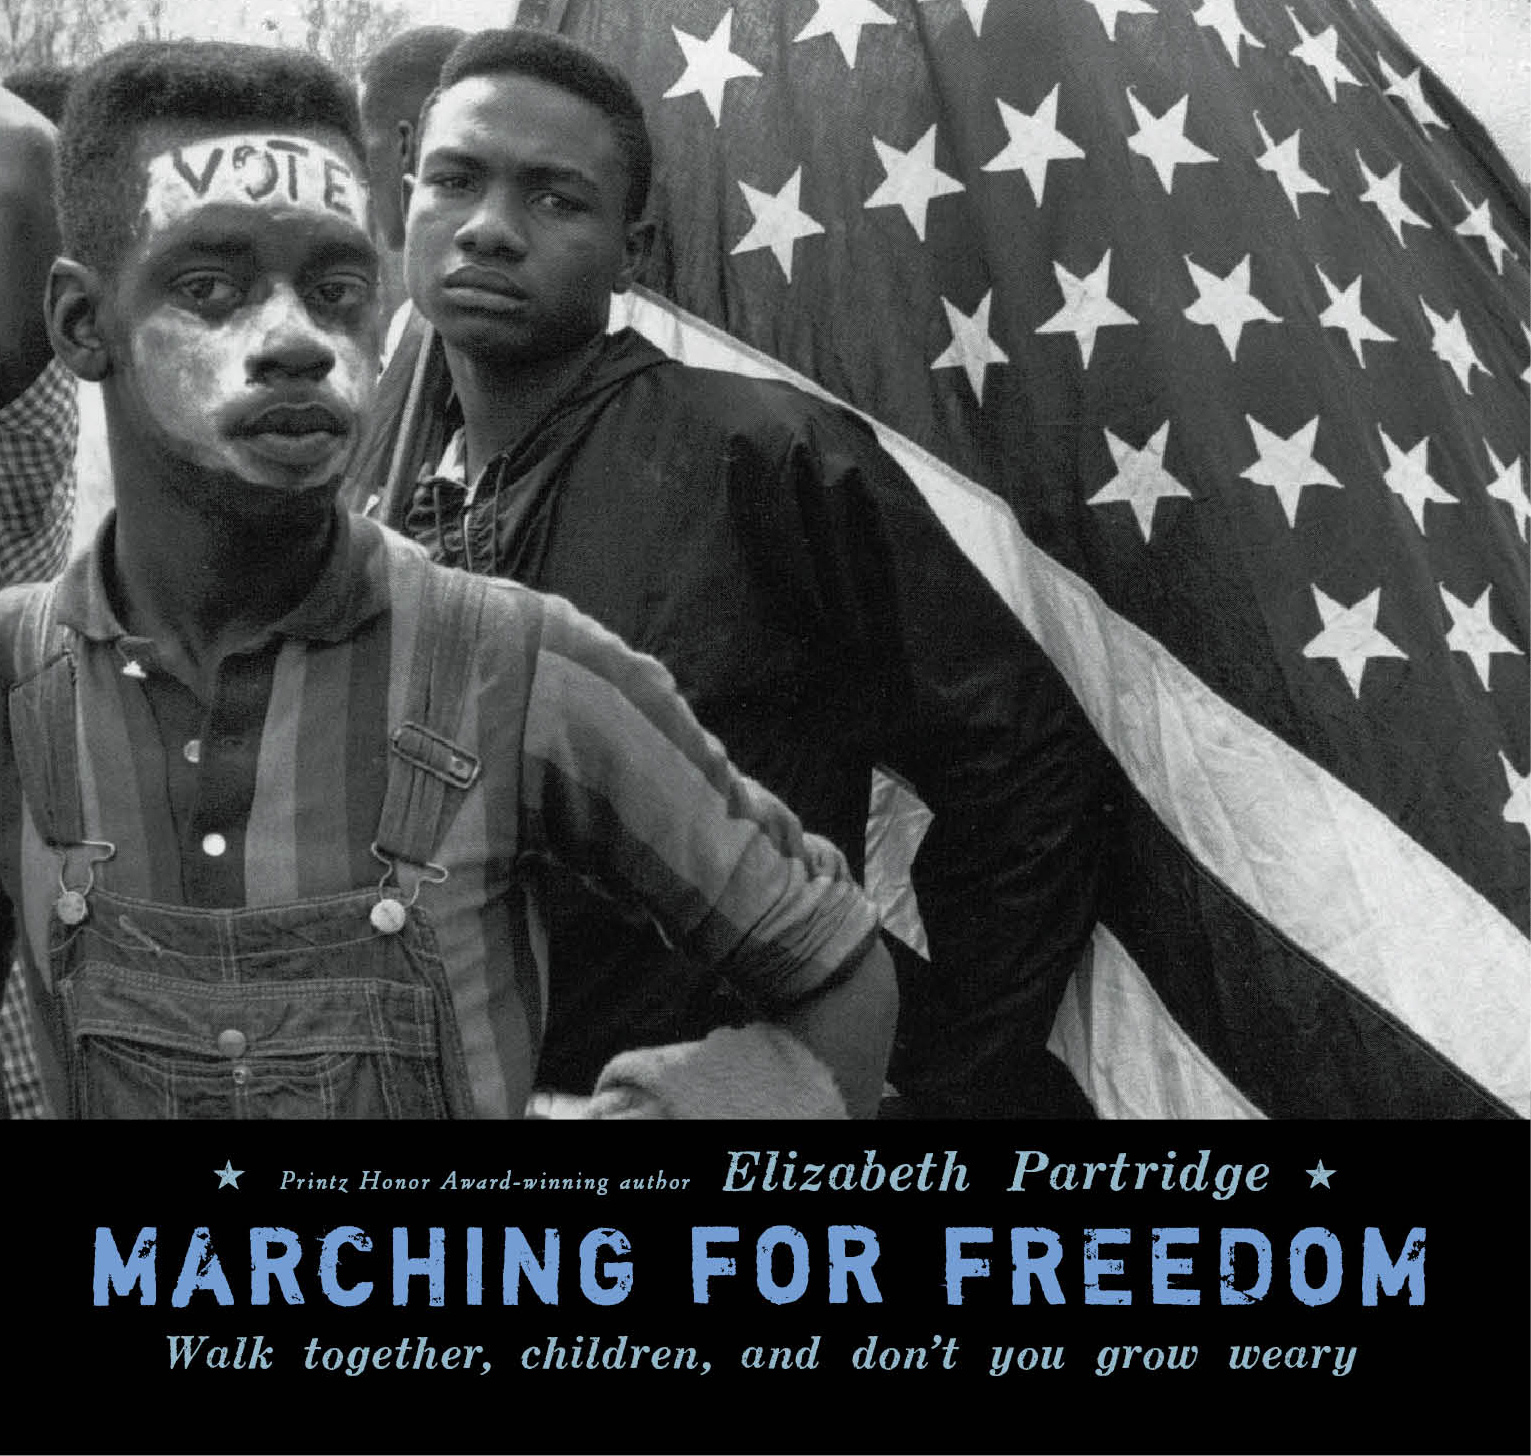 Marching for Freedom - More than forty years ago in the U.S., Dr. Martin Luther King Jr. was leading a fight to win blacks the right to vote. Ground zero for the movement became Selma, Alabama.Author Elizabeth Partridge leads you straight into the chaotic, passionate, and deadly three months of protests that culminated in the landmark march from Selma to Montgomery in 1965. Focusing on the courageous children who faced terrifying violence in order to march alongside King, this is an inspiring look at their fight for the vote.Viking Books for Young Readers, 2009